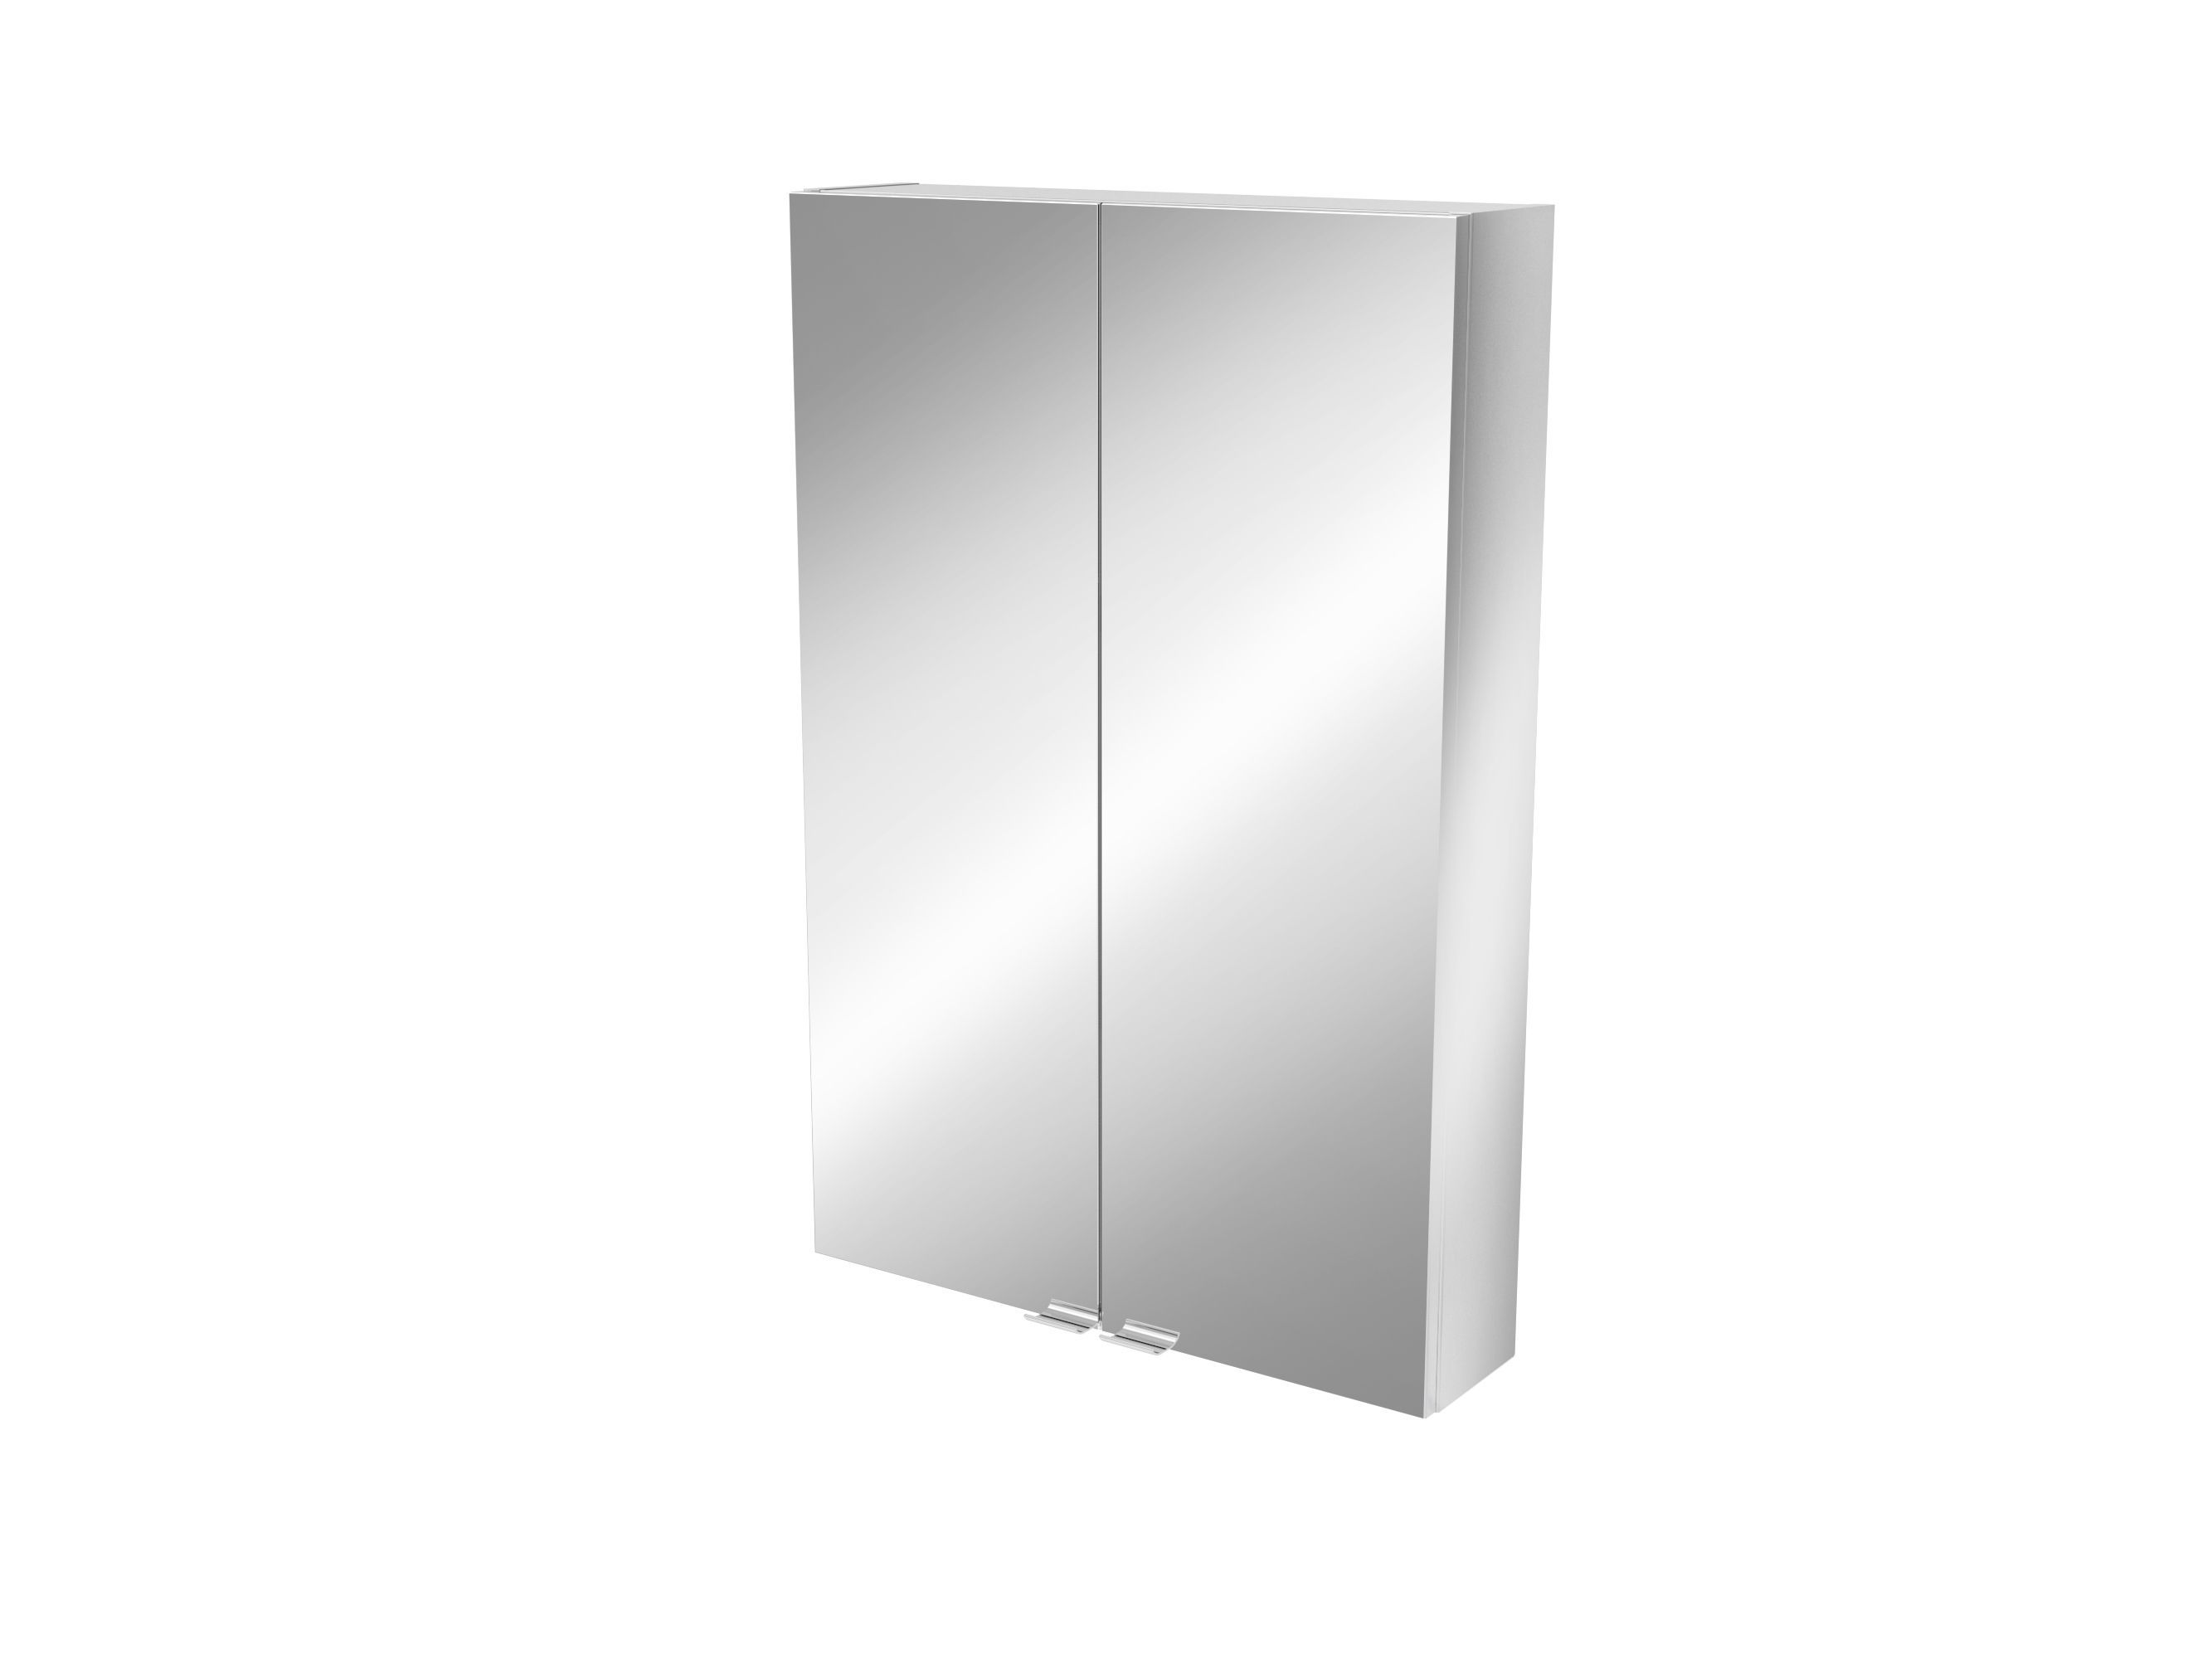 Cooke & Lewis Imandra Mirrored Wall Cabinet, (w)600mm